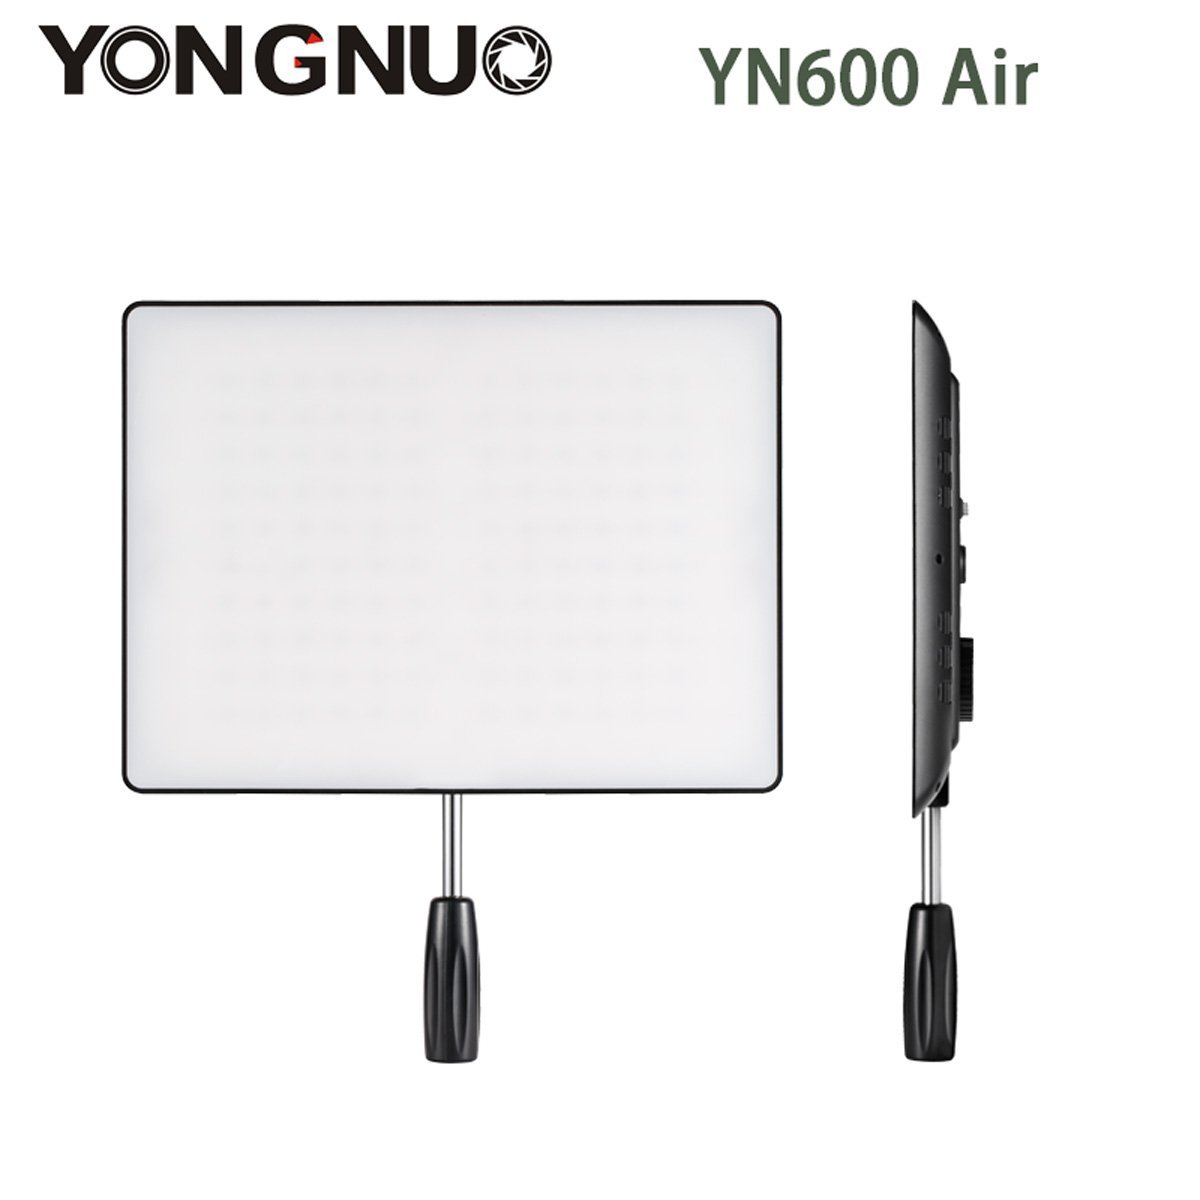 YONGNUO YN600 Air Ultra Thin LED Camera Video Light 3200K-5500K for Canon for Nikon for Pentax for Olympas for Samsung DSLR